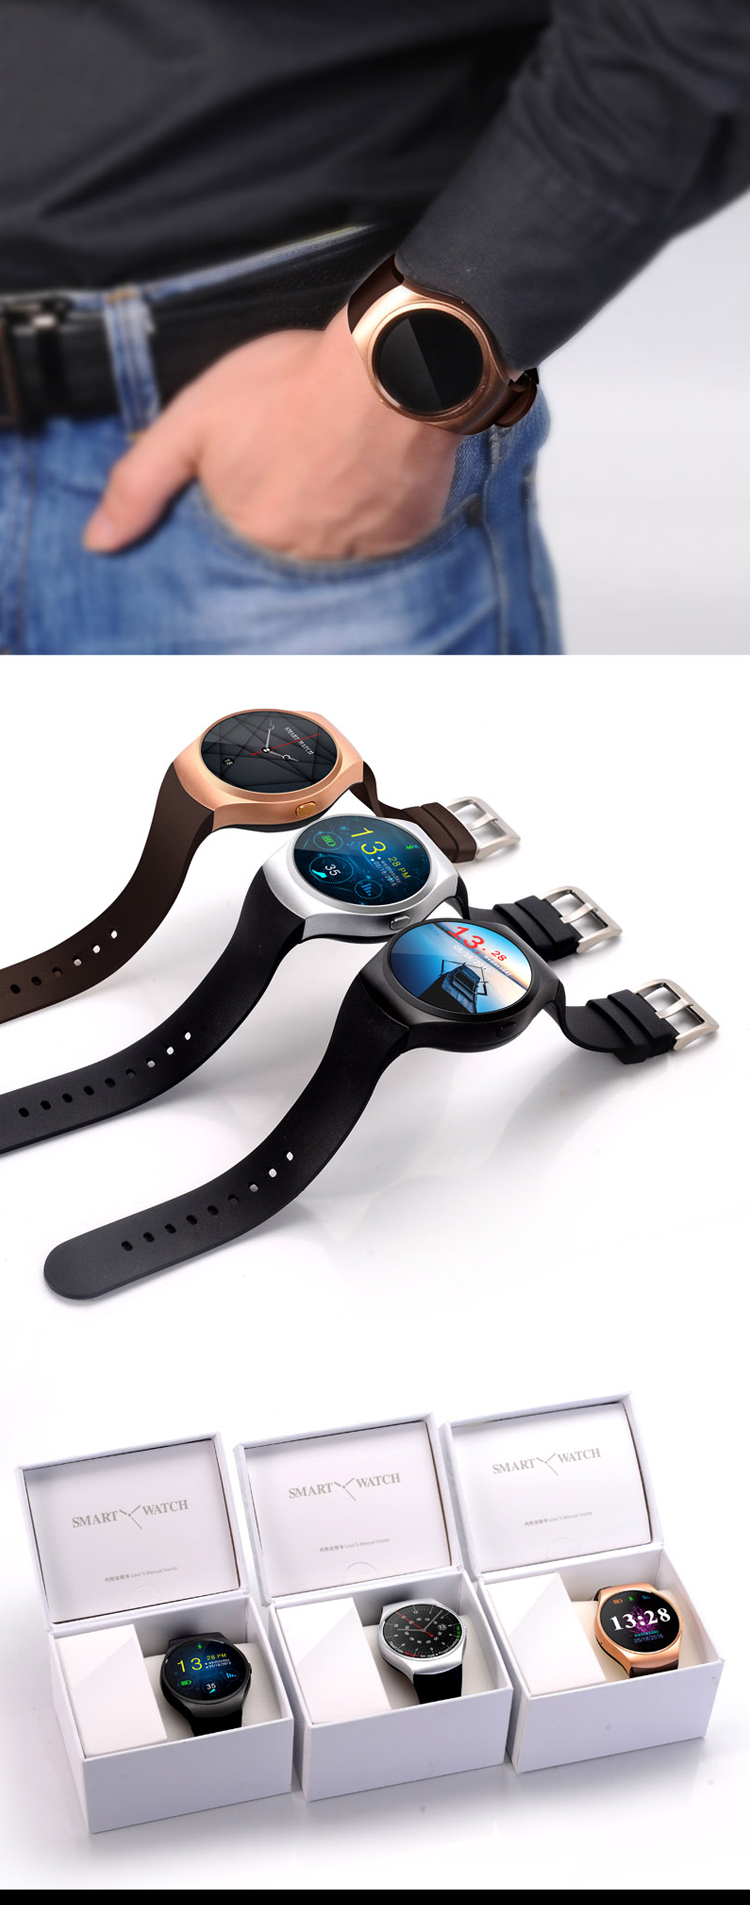 Phone calling 1.3inch screen micro-sd slot gt88 smart watch